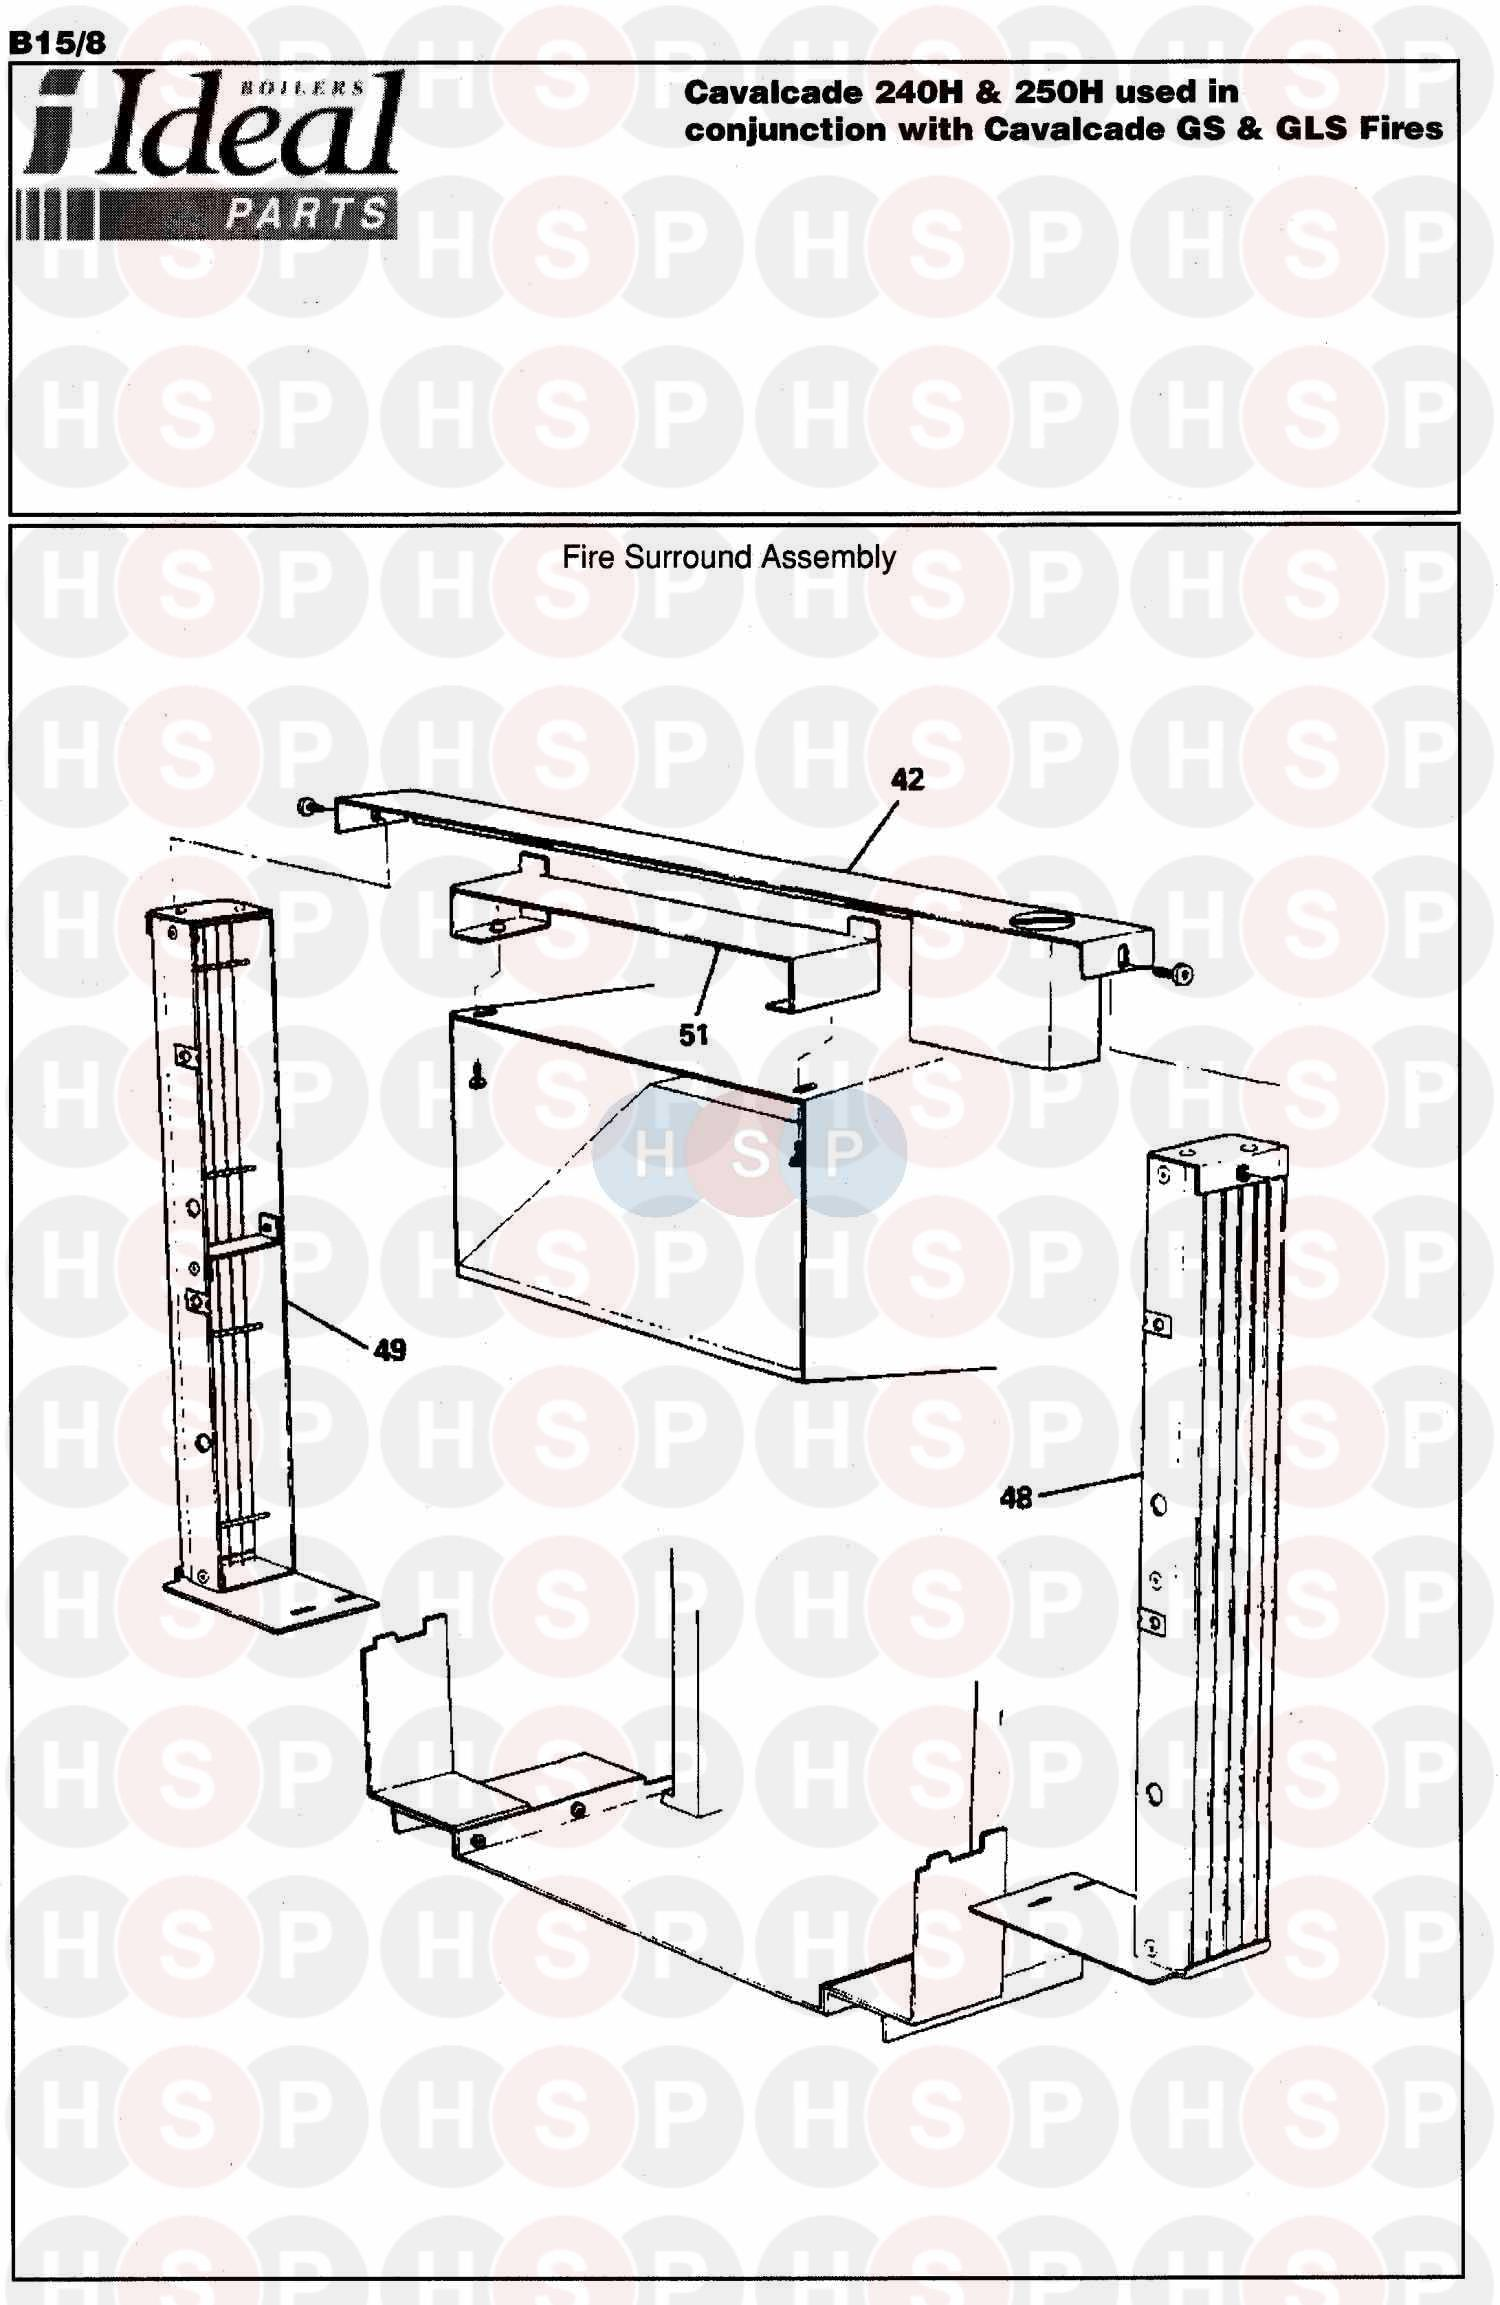 ideal cavalcade 250h appliance diagram  fire assembly 1